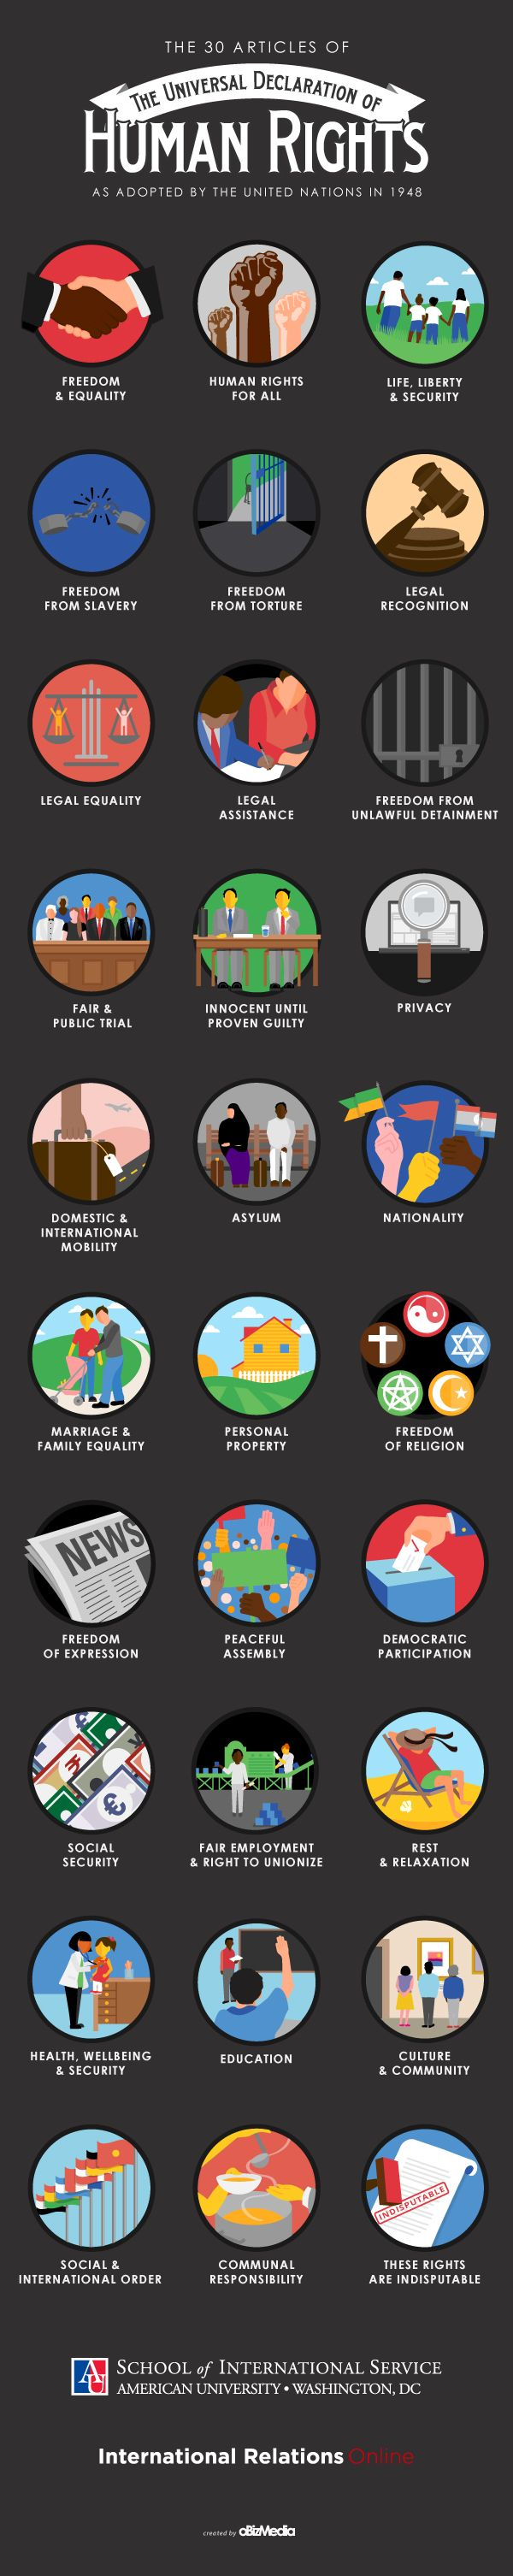 The 30 Articles of the Universal Declaration of Human Rights. Understanding Our Basic Human Rights | Visual.ly